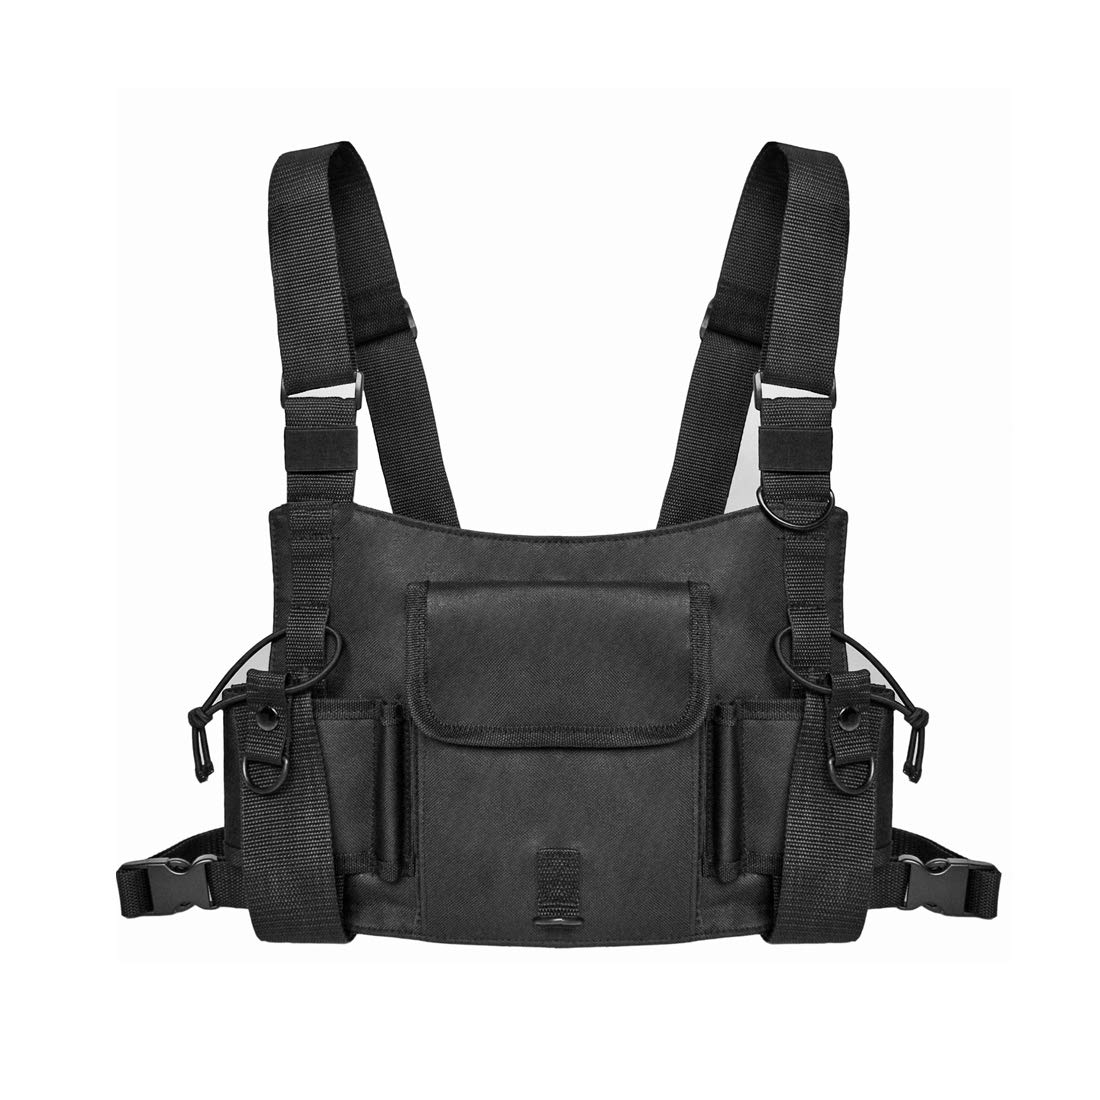 Universal Radio Harness Chest Rig Hands Free Chest Pocket Bag Holster Holder Vest Rig for Two Way Radio